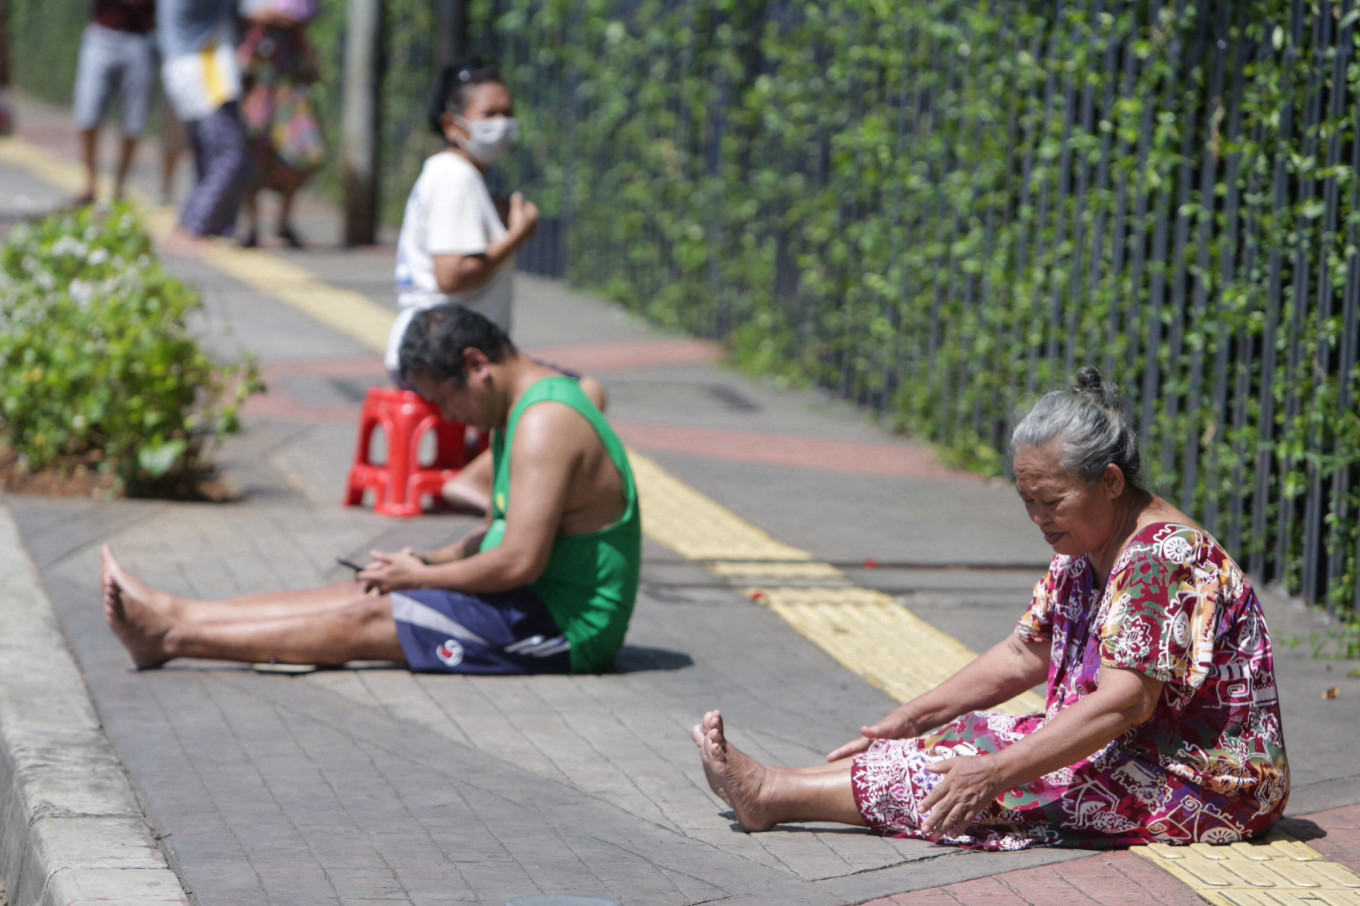 Jakarta's poor at risk as city drags feet on COVID-19 social assistance